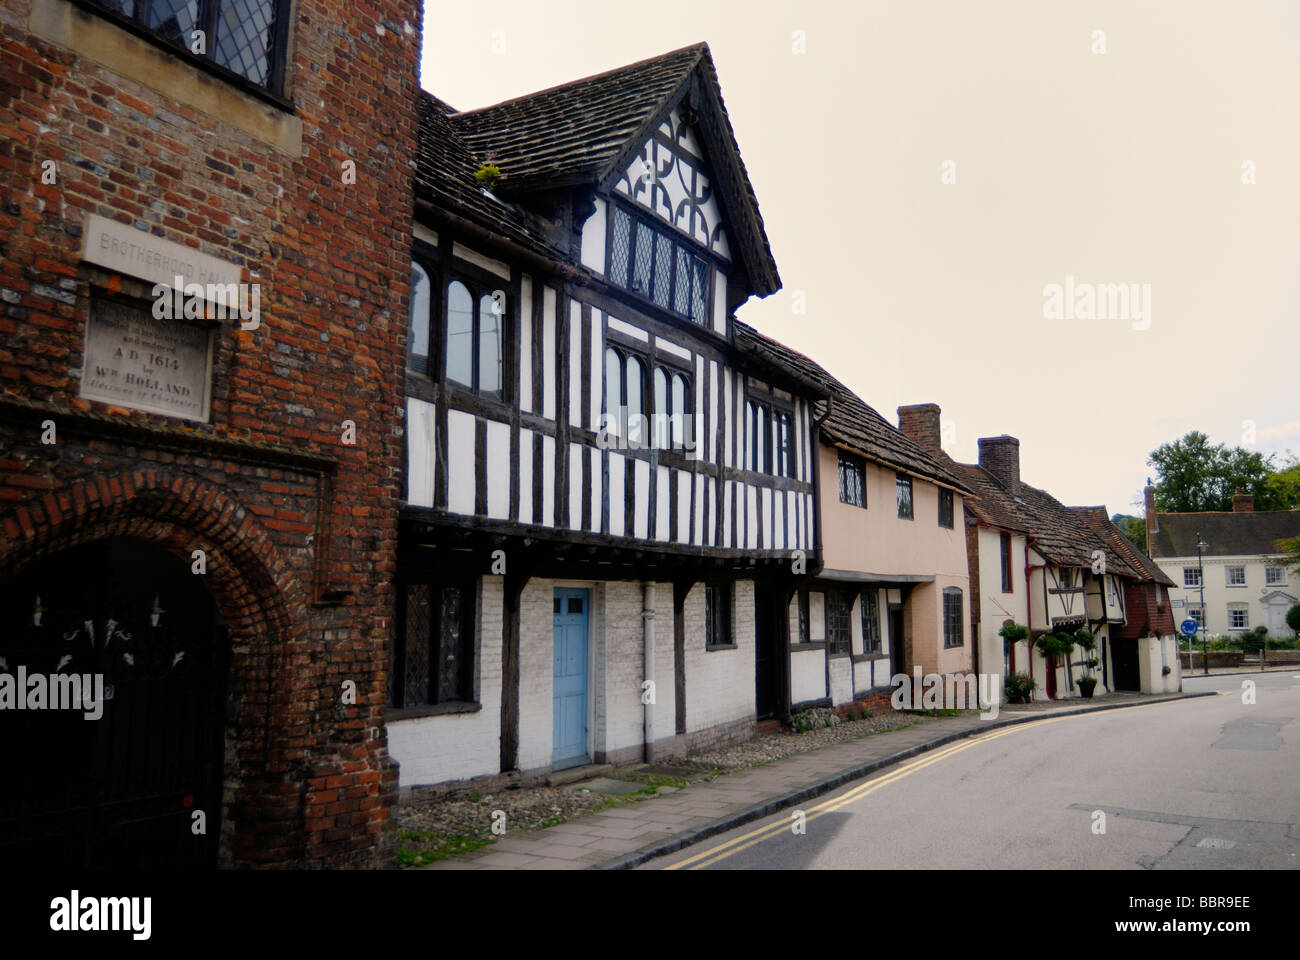 Ancient village high street - Stock Image